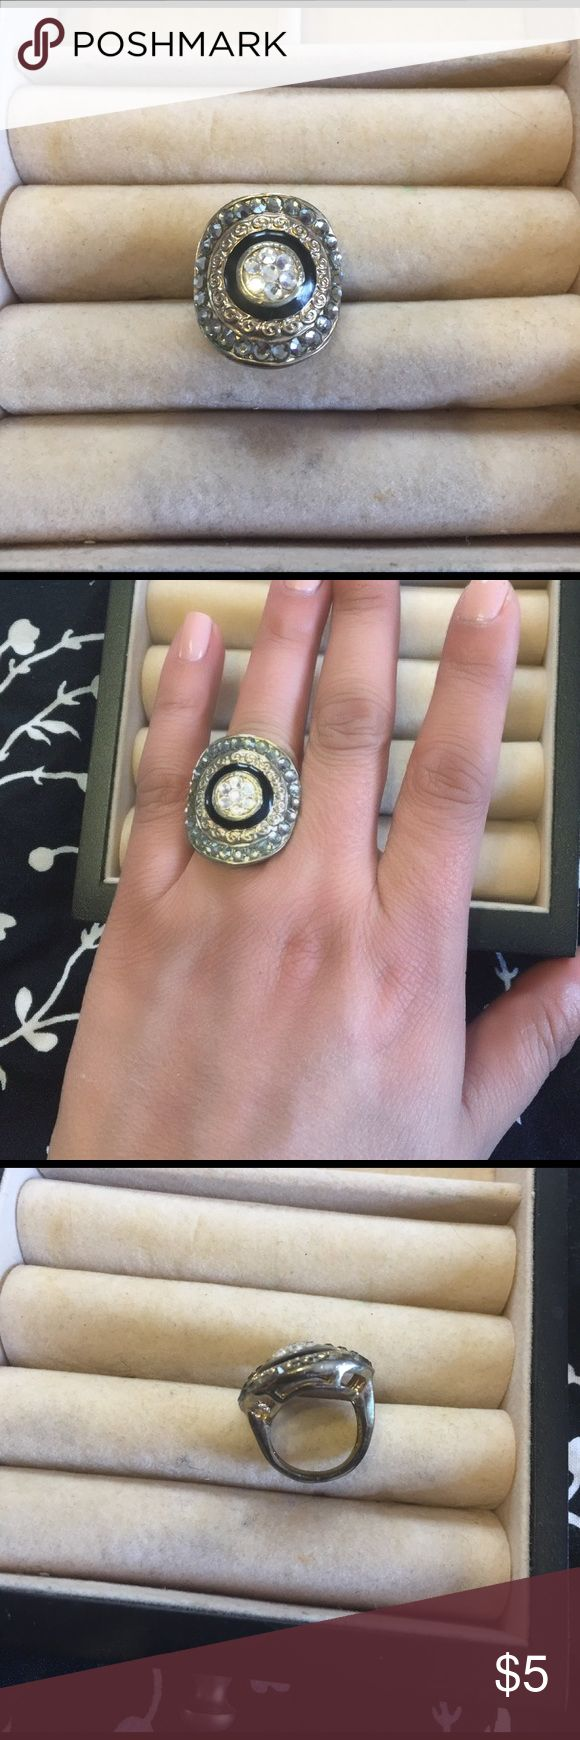 Statement ring Aldo statement ring .  Unsure of size . Might be 5 1/2 or 6 Aldo Jewelry Rings